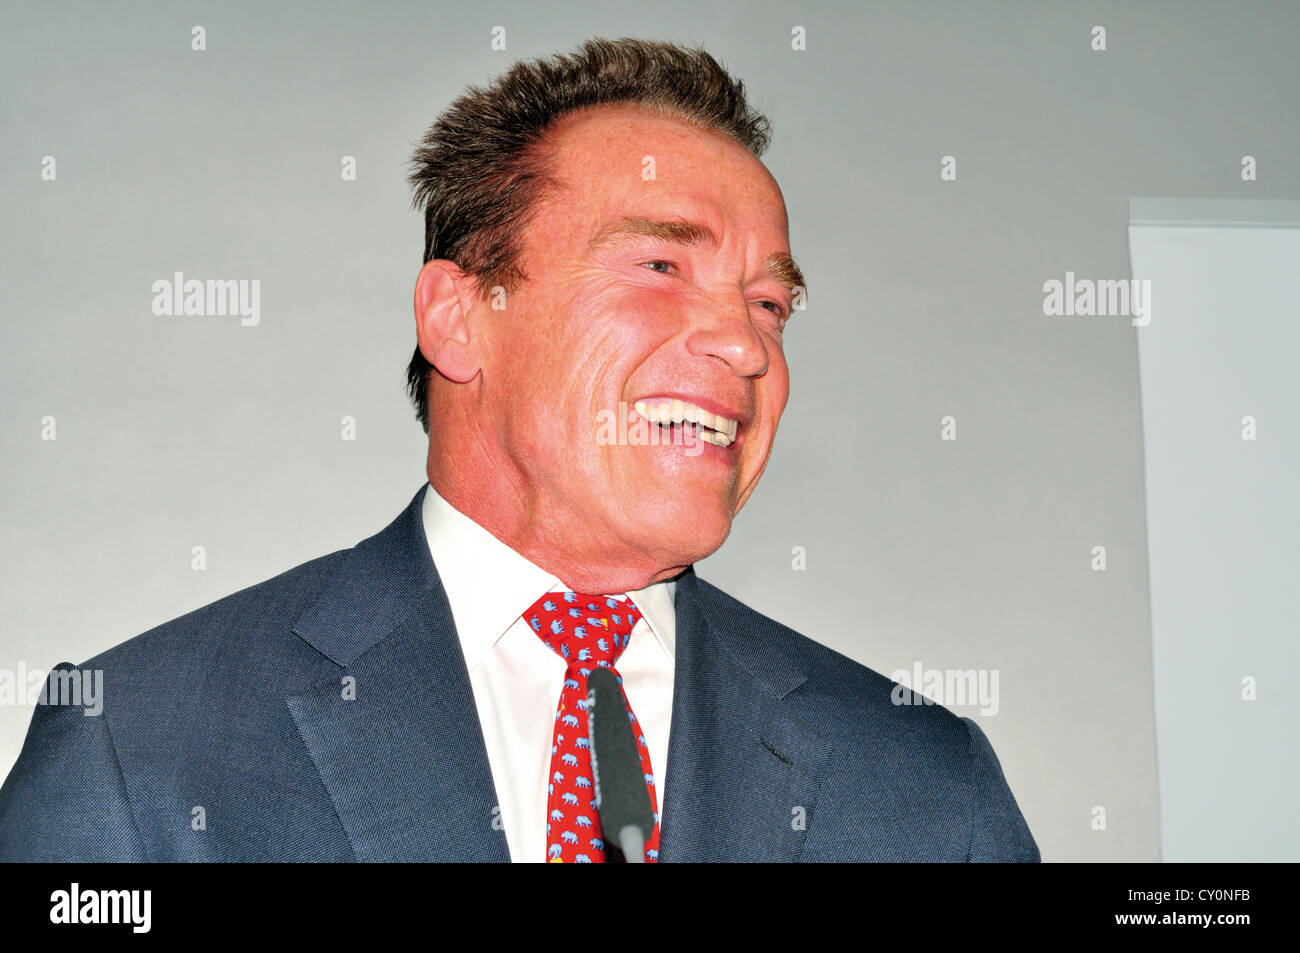 Germany: Arnold Schwarzenegger during presentation of his autobiography 'Total Recall' at the Book Fair - Stock Image